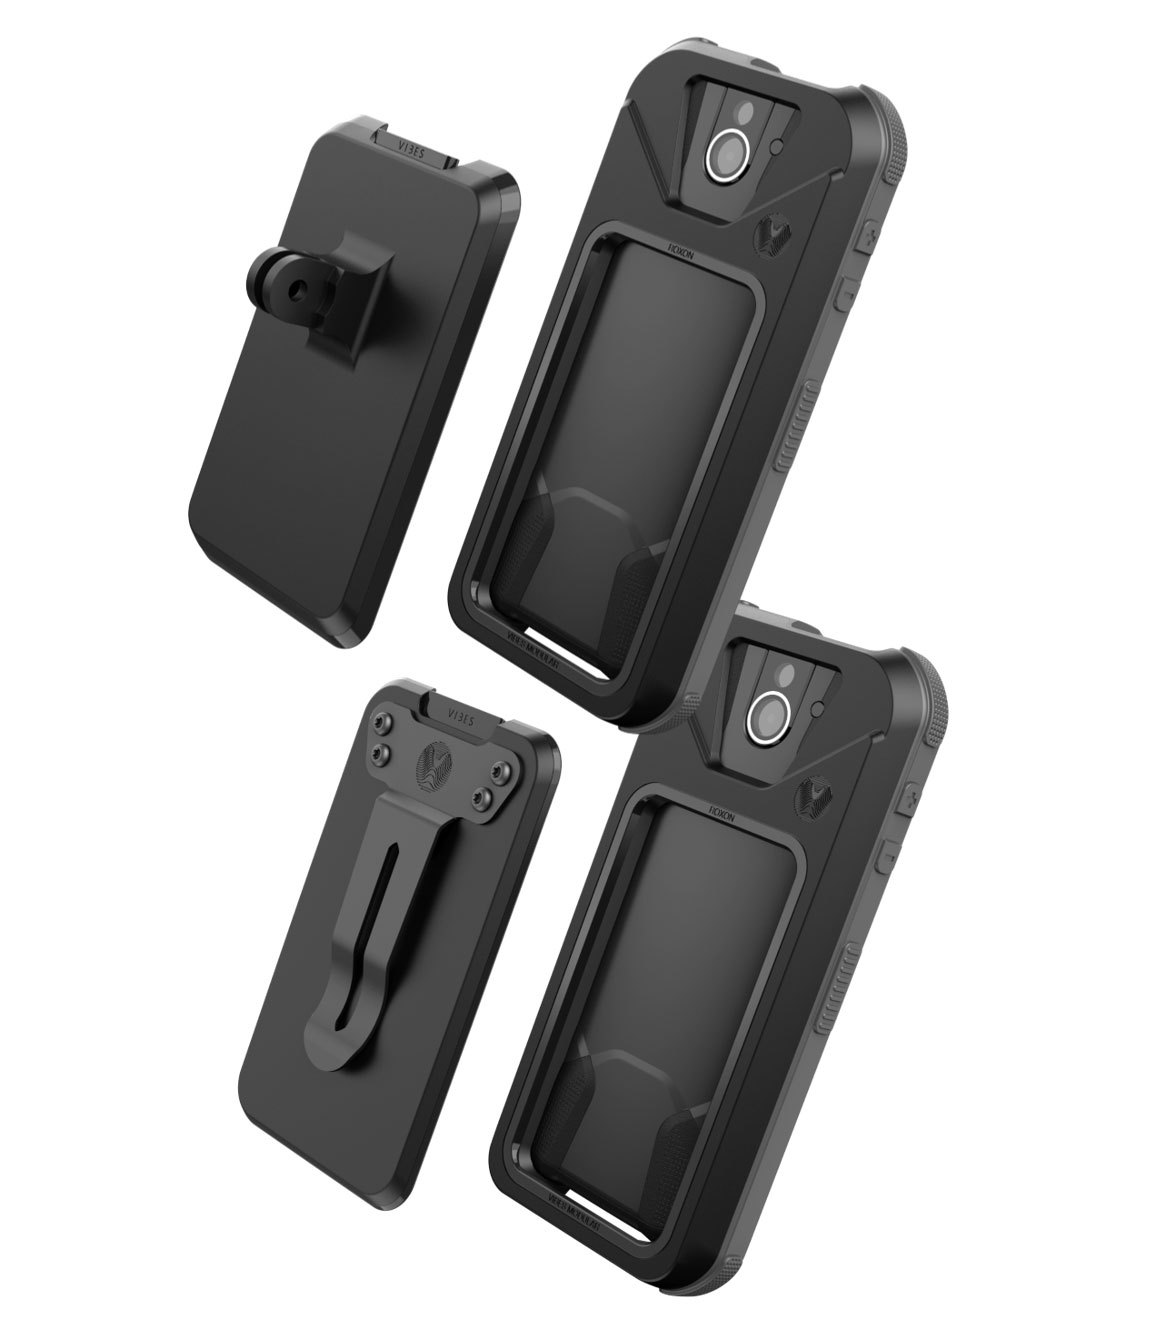 Kyocera Teams with VIBES Modular for Interchangeable, Cost